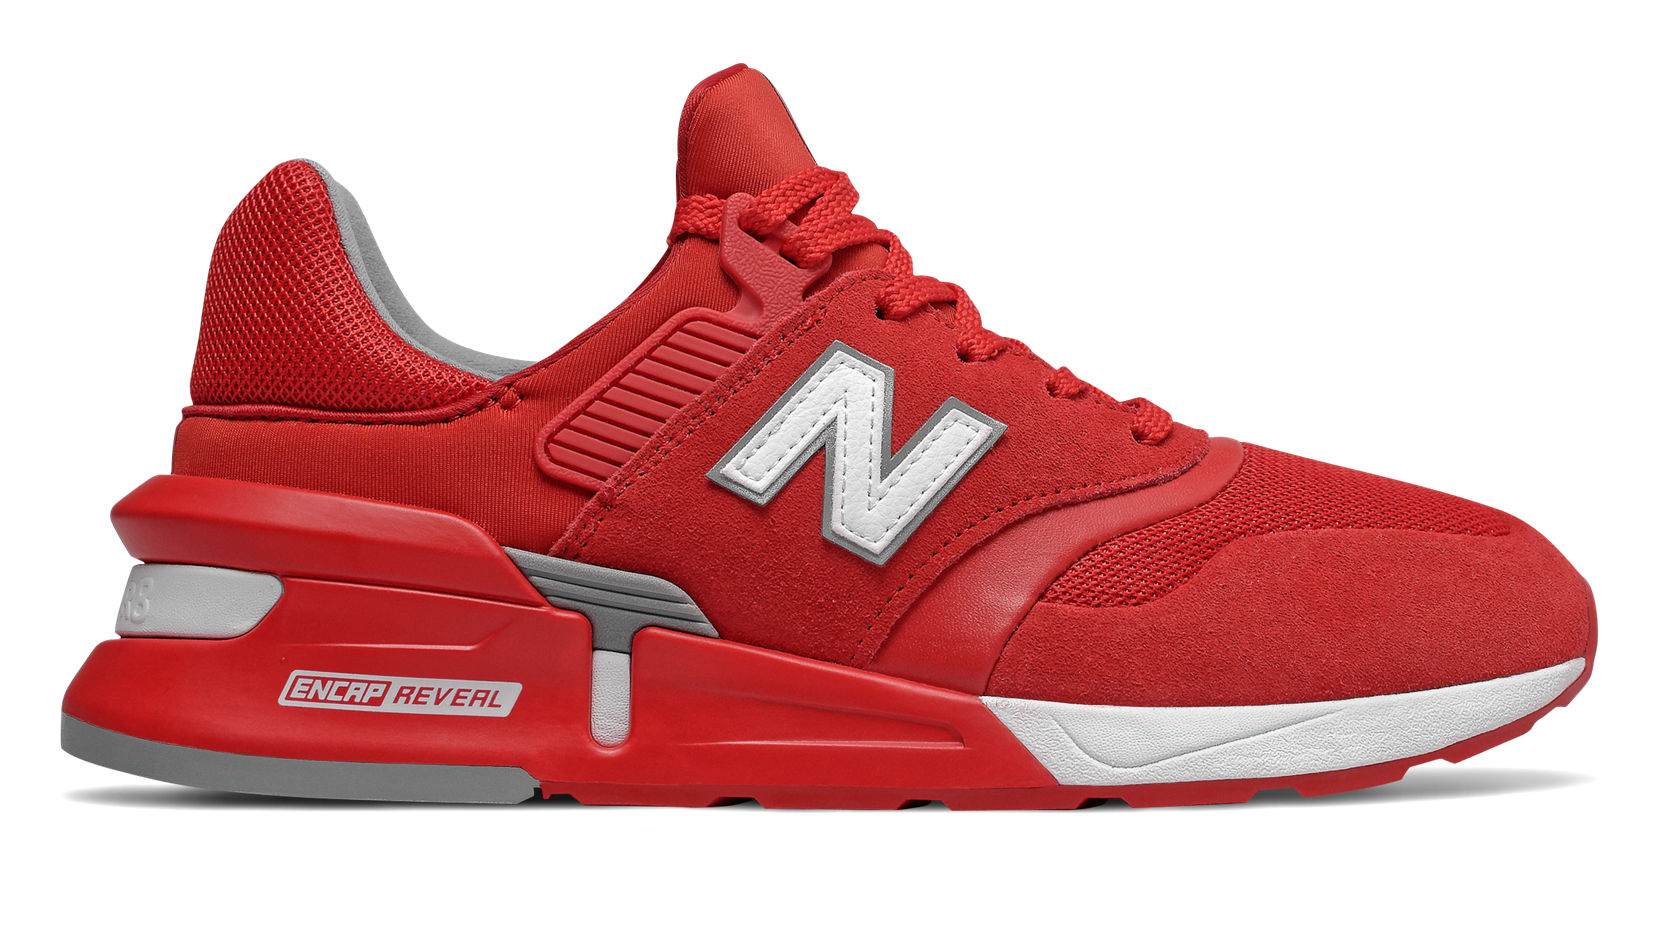 NB 997 Sport, Team Red with White